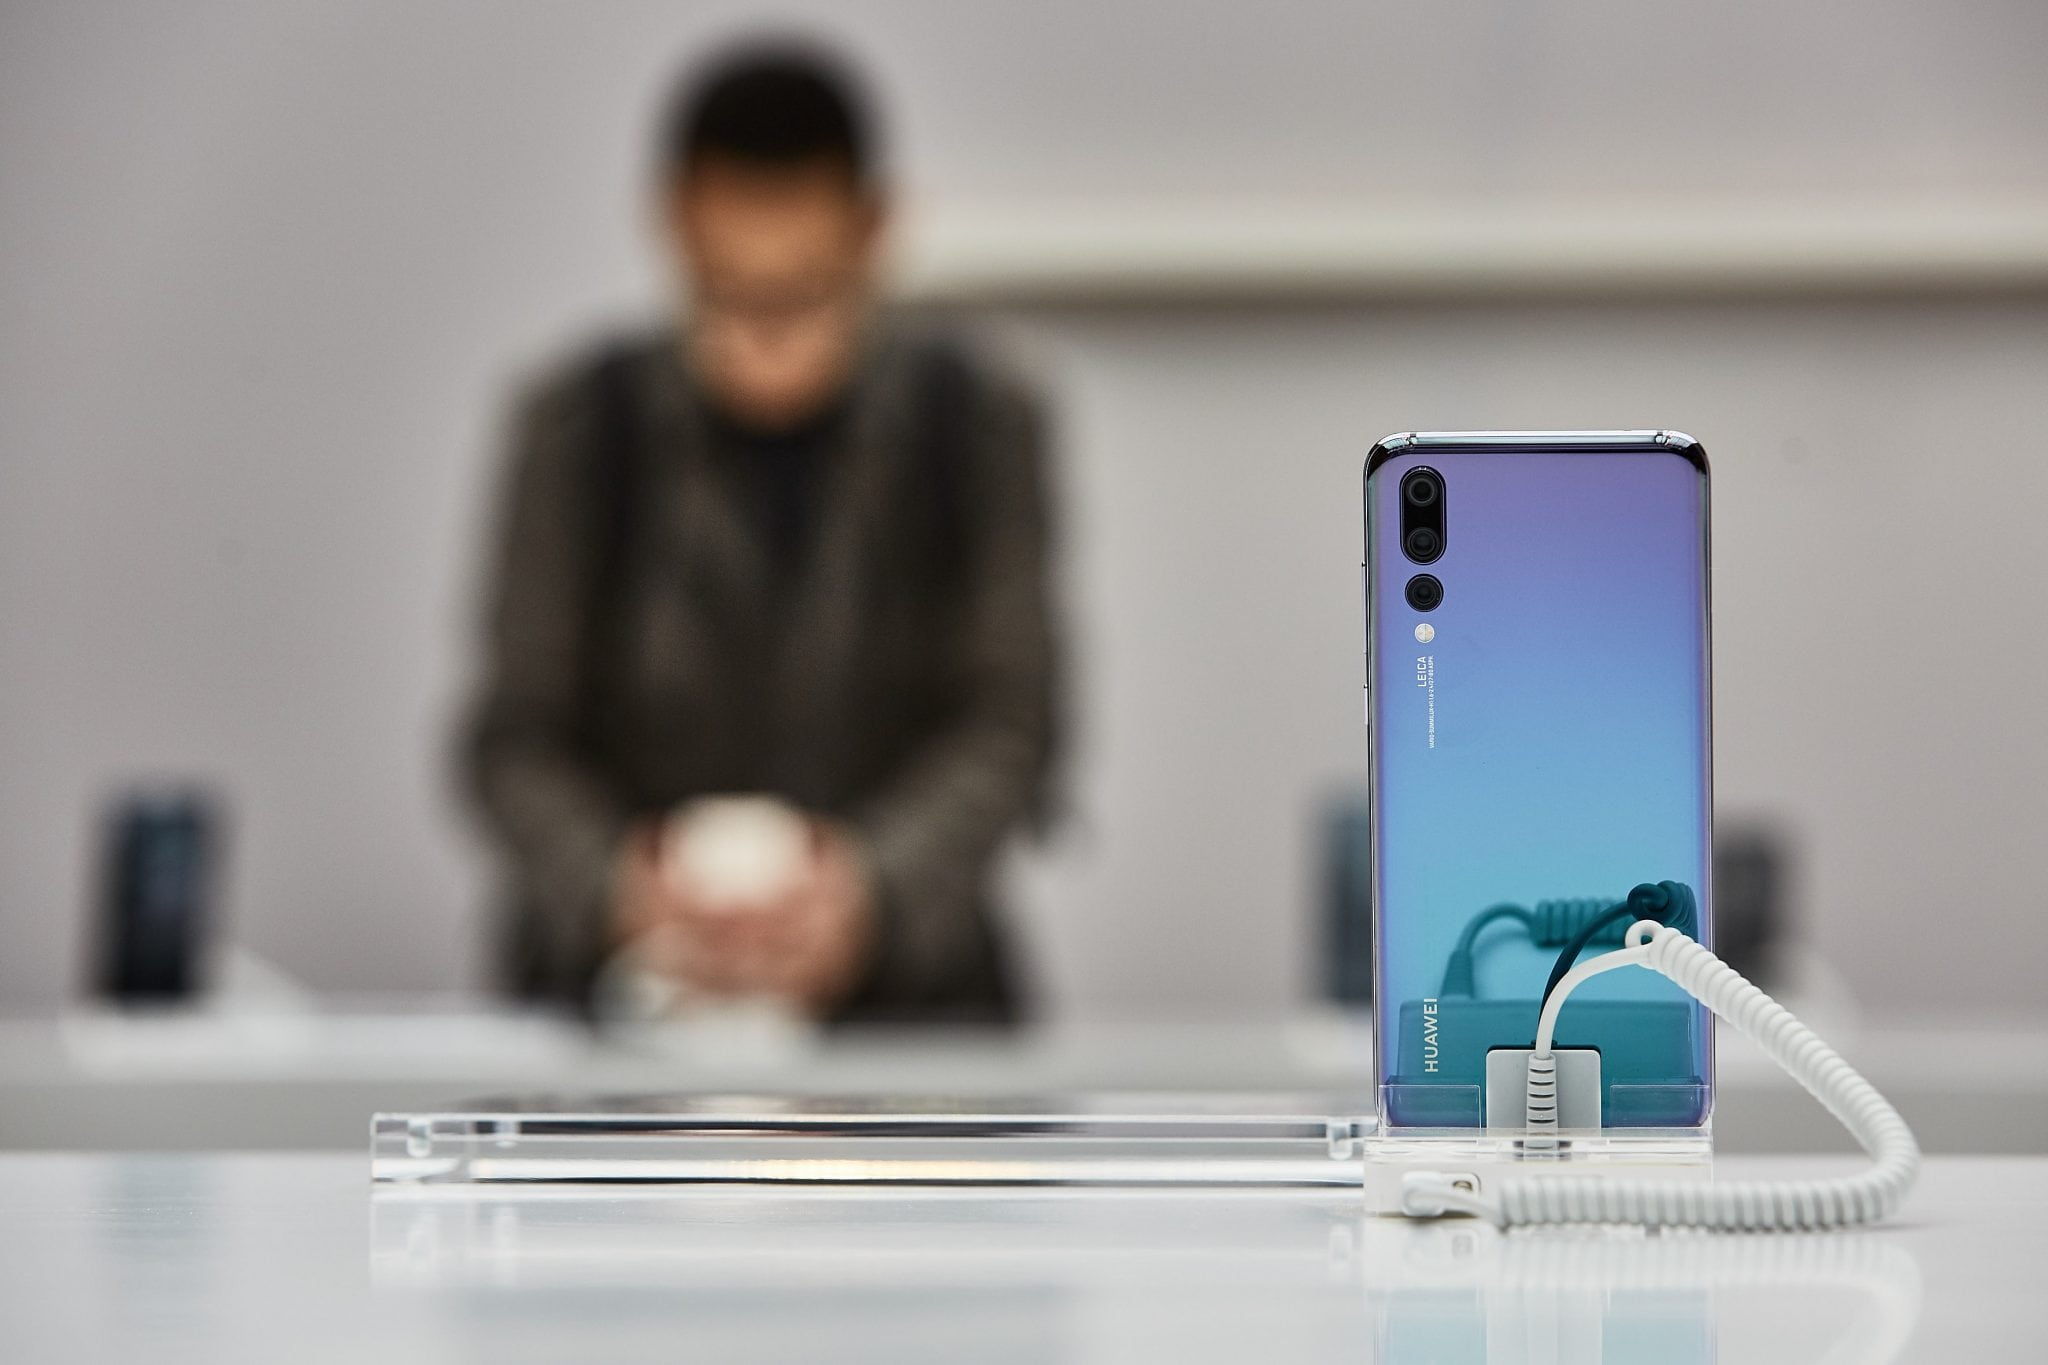 Huawei p20 pro ، هواوي بي 20 برو